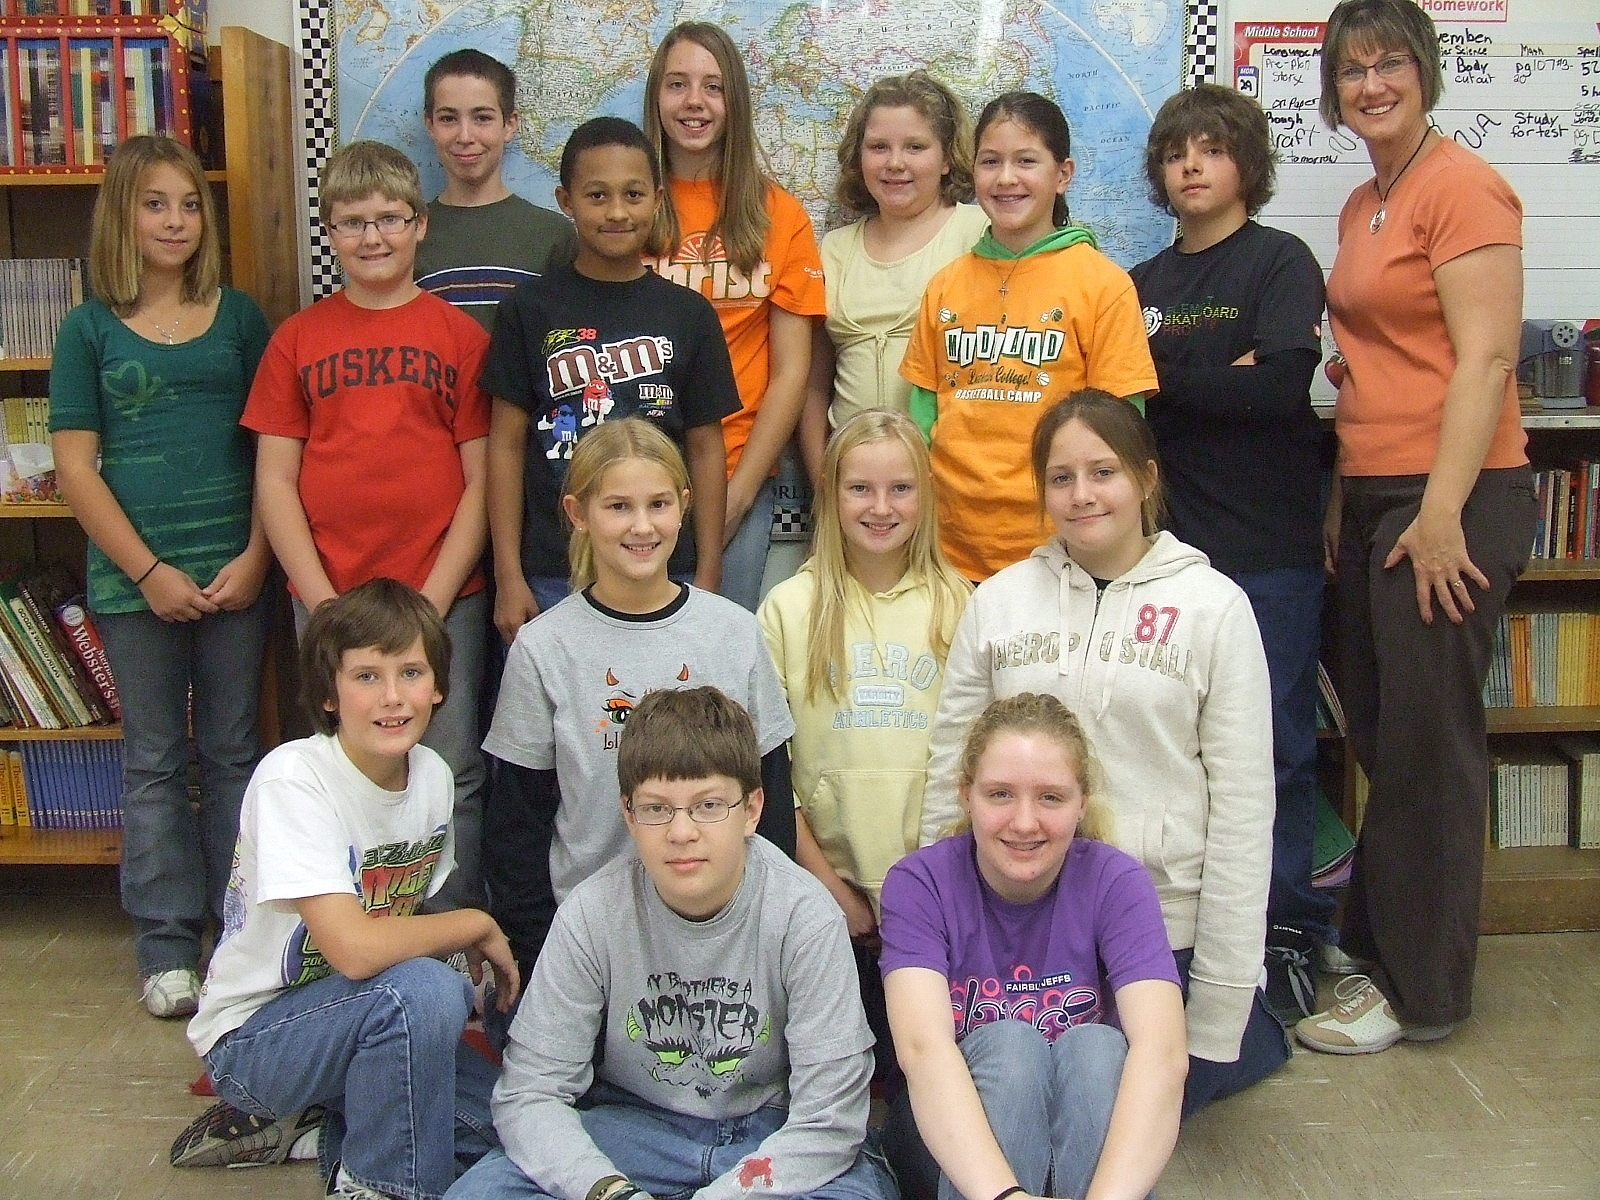 Worksheet Sixth Grade education world teacher feature sixth grade snoops karen dux and her class share classroom news photos provided by dux